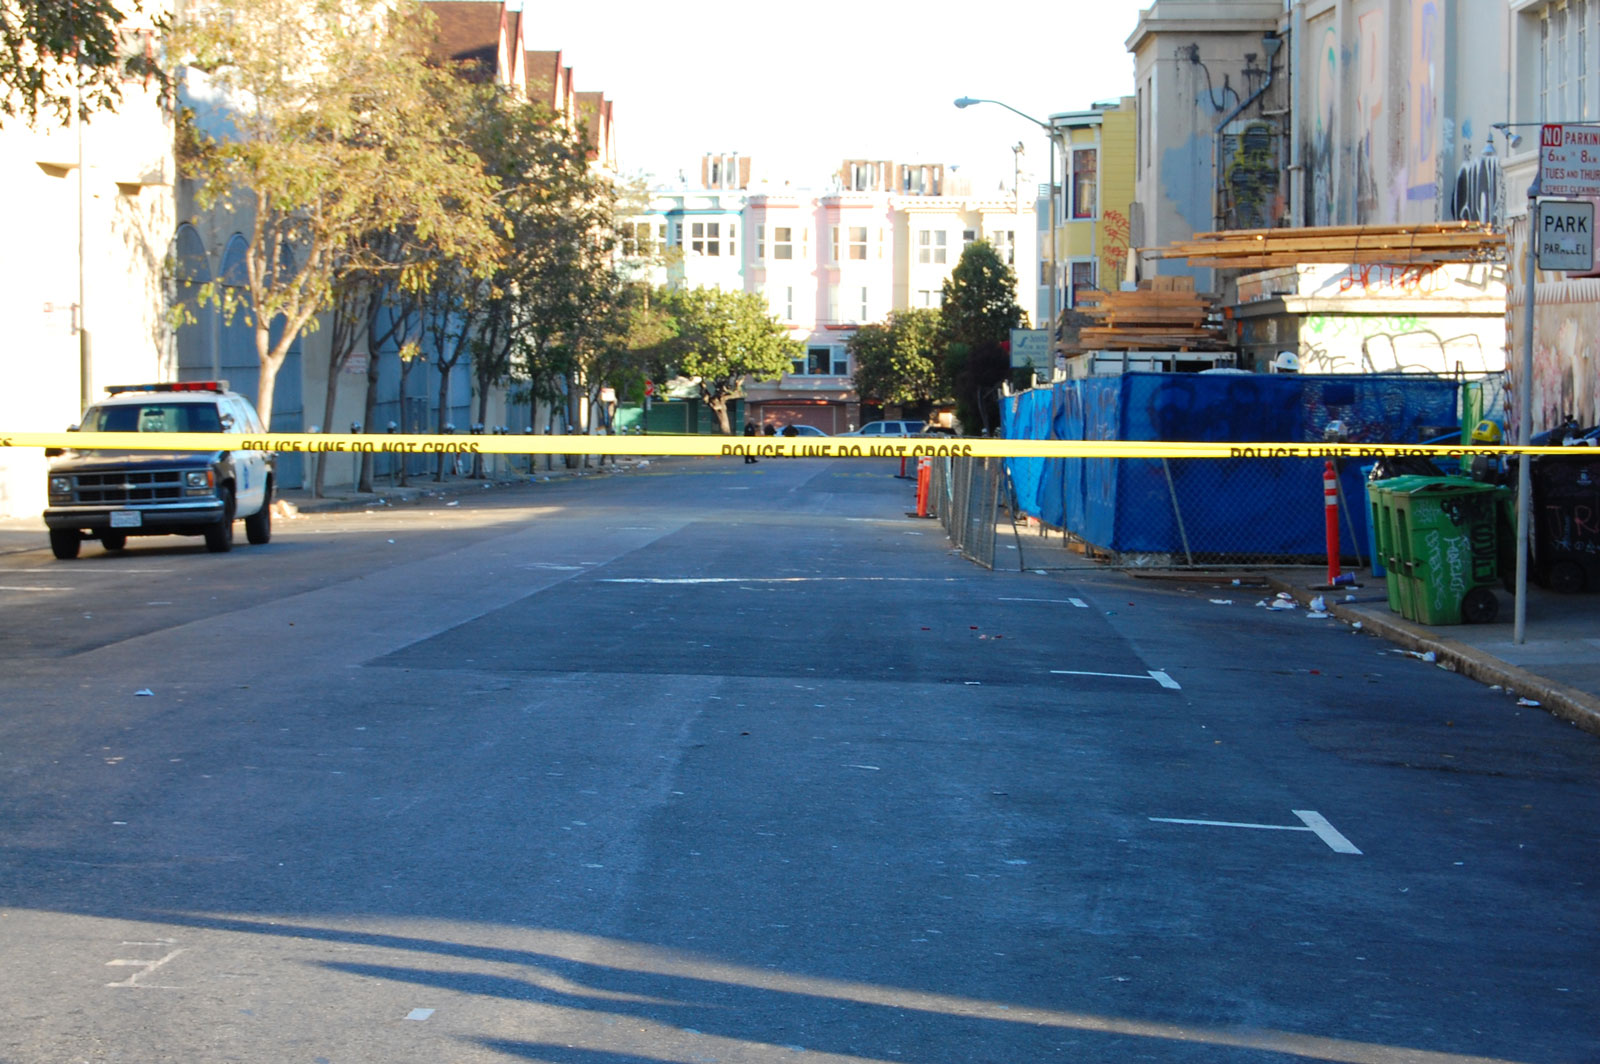 The unidentified man died in the middle on the road just beyond the police tape. Photo by Andra Cernavskis